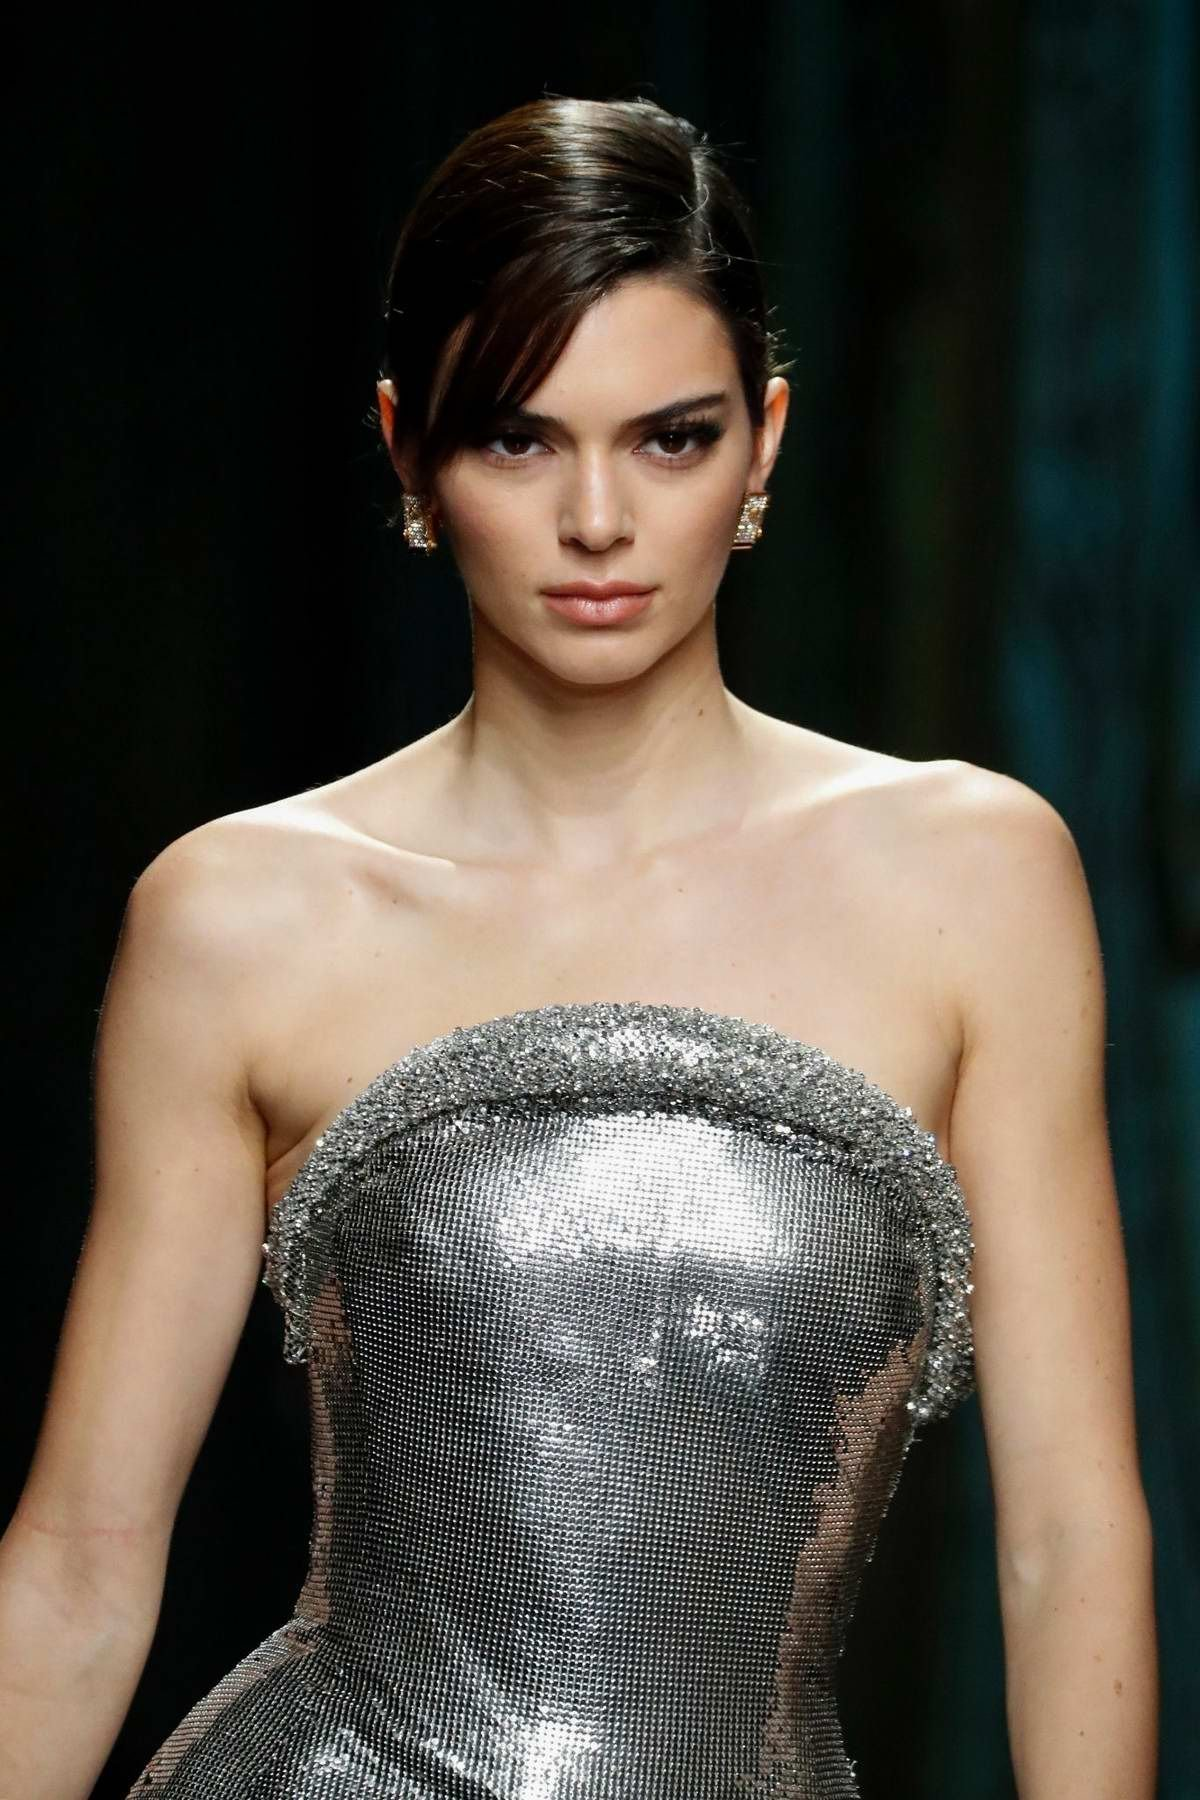 kendall-jenner-walks-the-runway-at-the-versace-fashion-show-f-w-2020-during-milan-fashion-week-in-milan-italy-200220_22.jpg